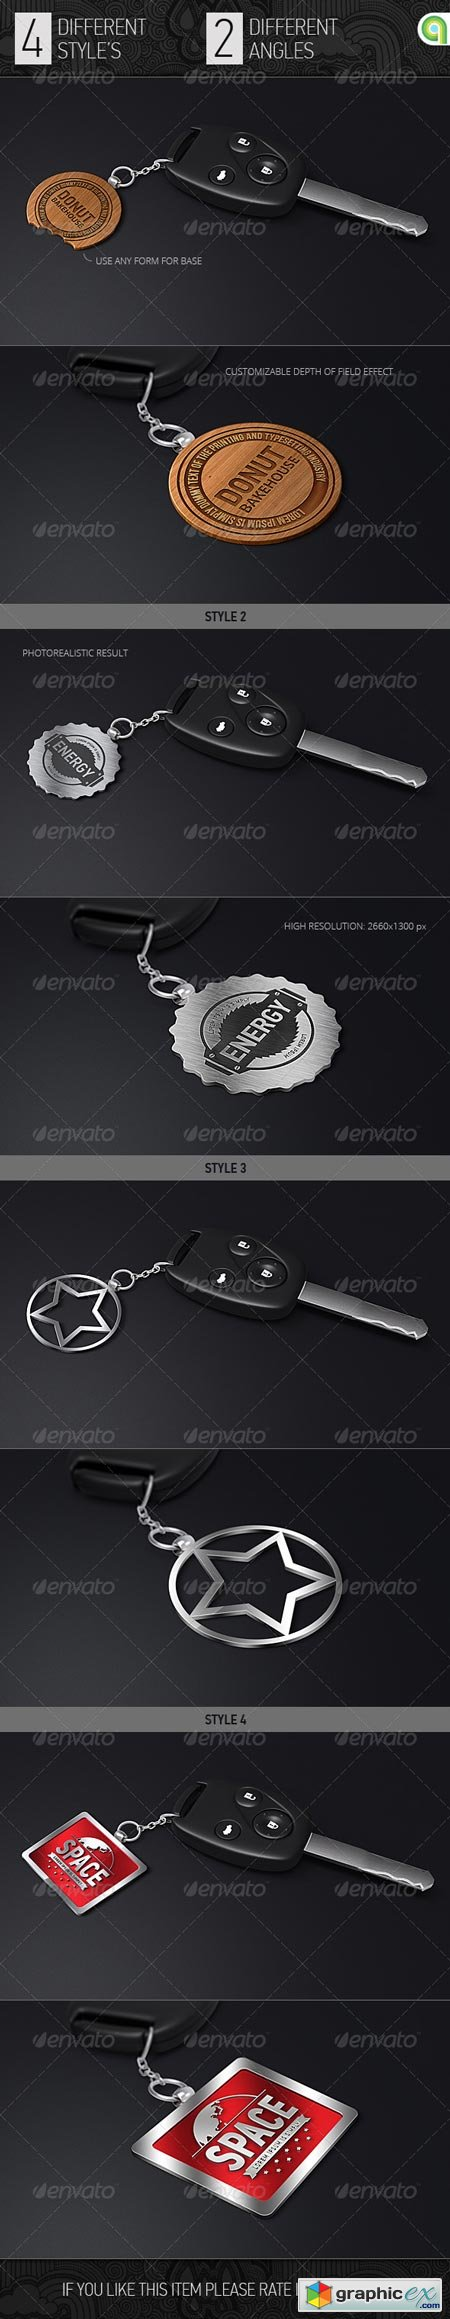 Logo Mock-Up Key Trinket 7609738